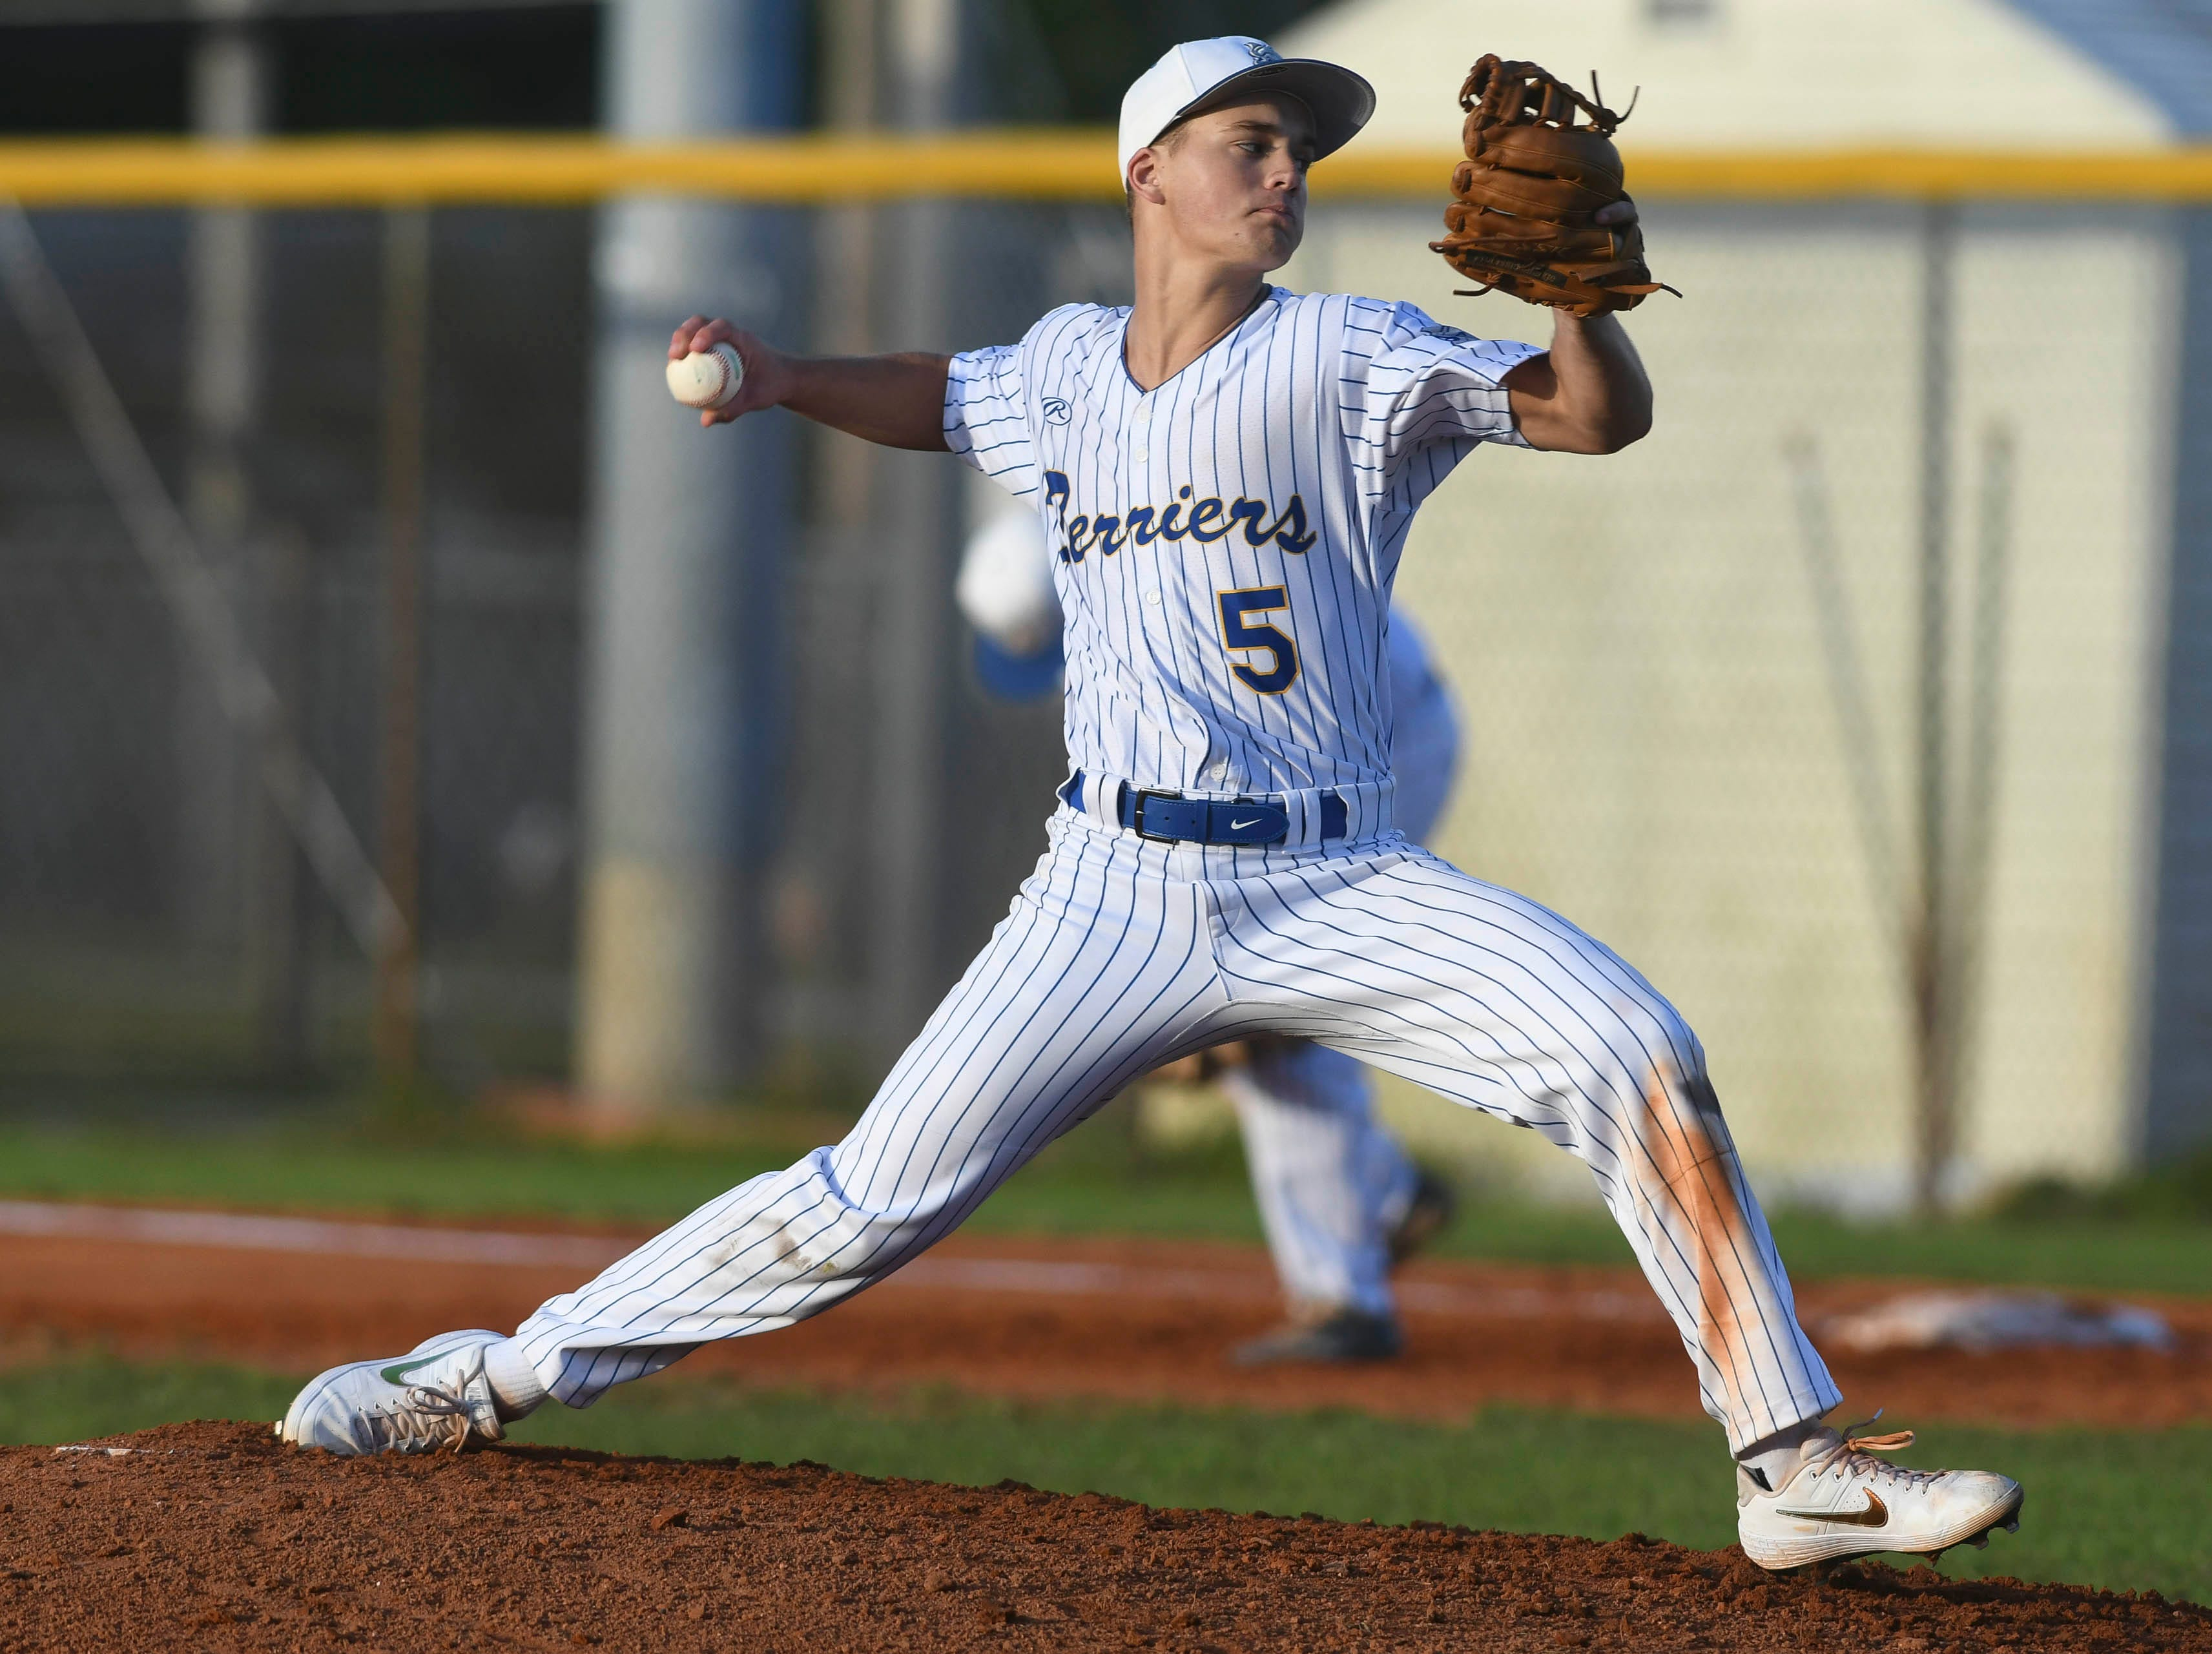 Jackson Woodward of Titusville throws out an Astronaut baserunner during Thursday's game.